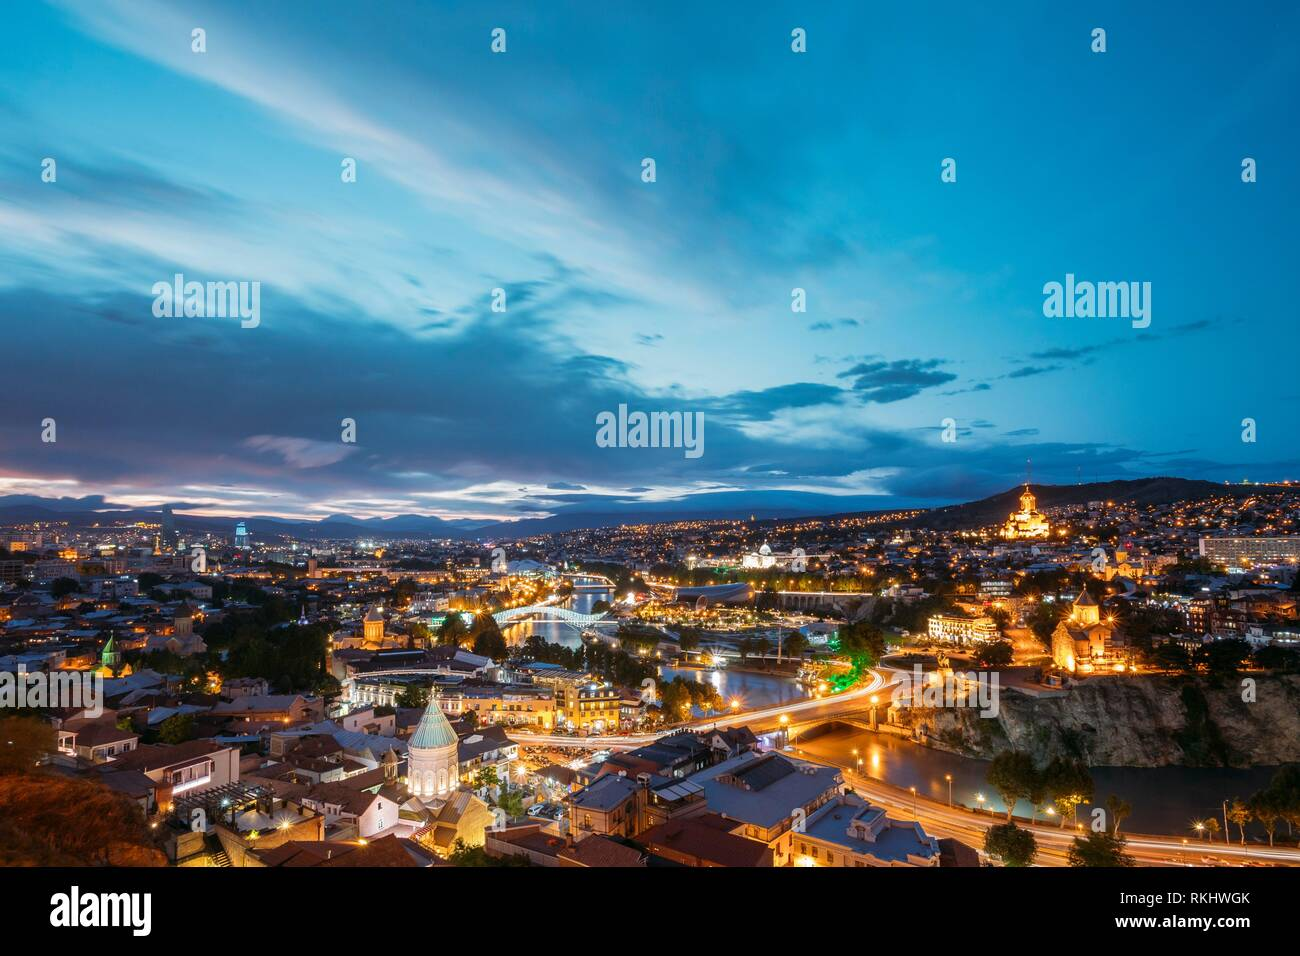 Scenic Top View Of Tbilisi, Georgia In Bright Evening Illumination With All Famous Landmarks, Sightseeings. Dramatic Blue Cloudy Sky Background. Stock Photo